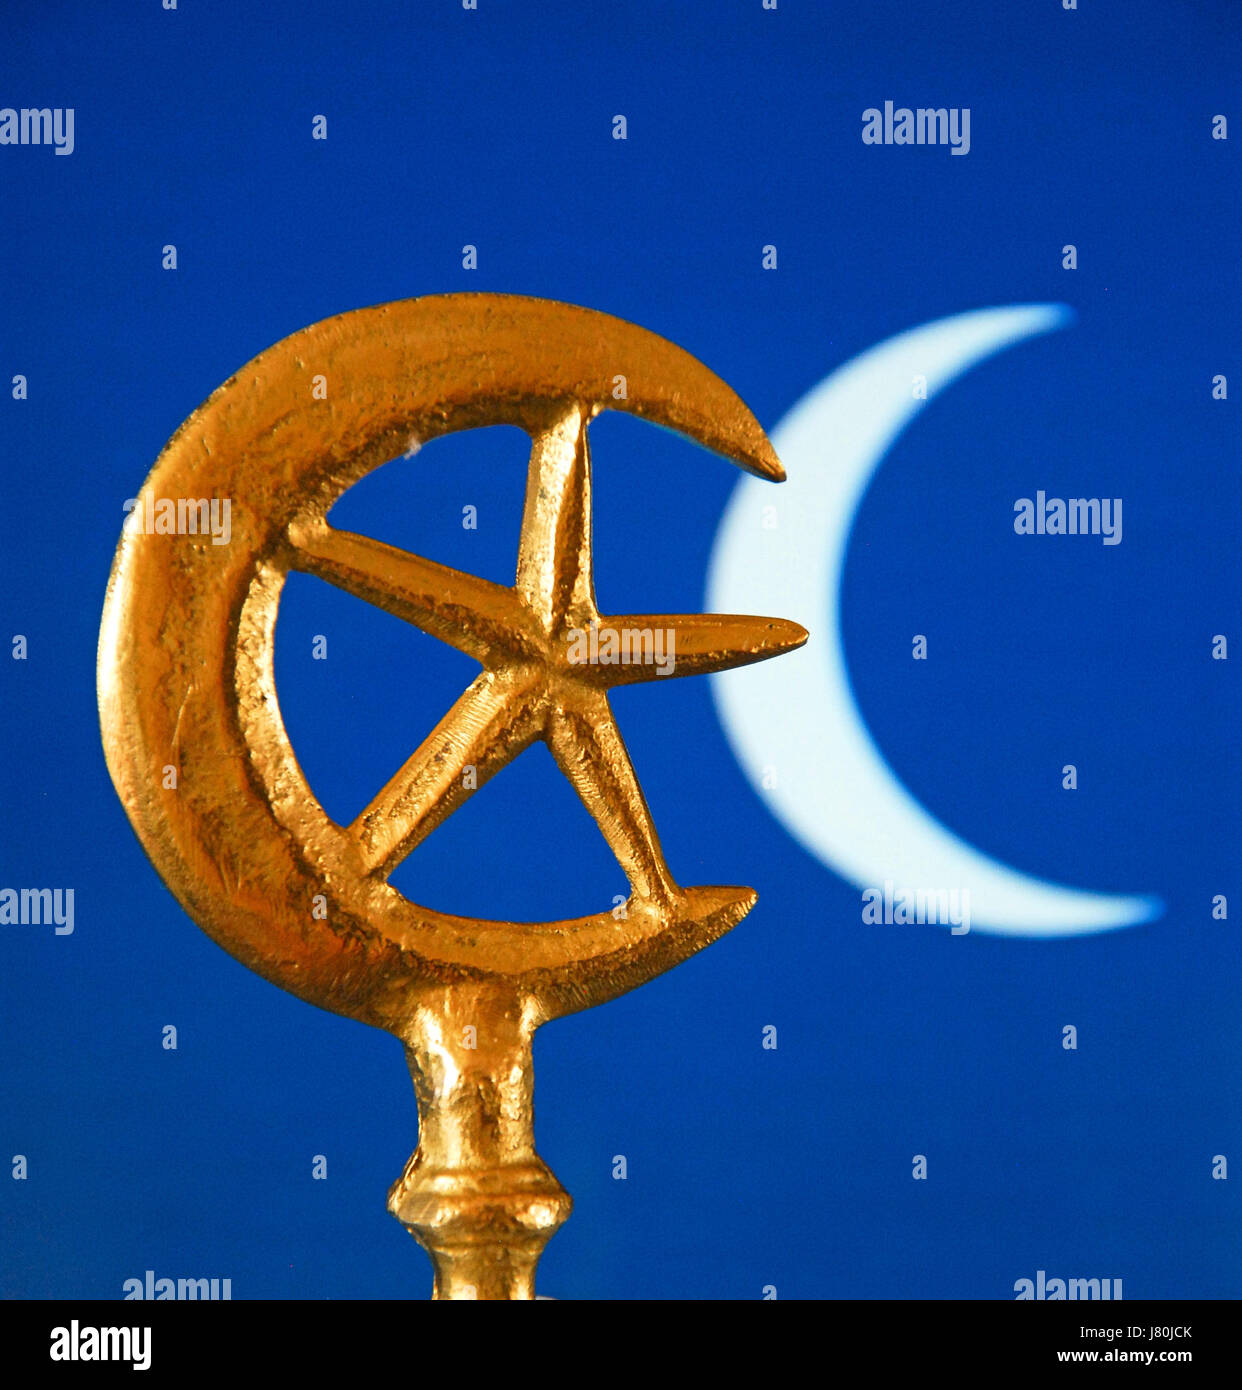 The crescent moon and star which became connected with islam in the crescent moon and star which became connected with islam in the mid c20th the rich blue colour is often used in tiles to decorate mosques biocorpaavc